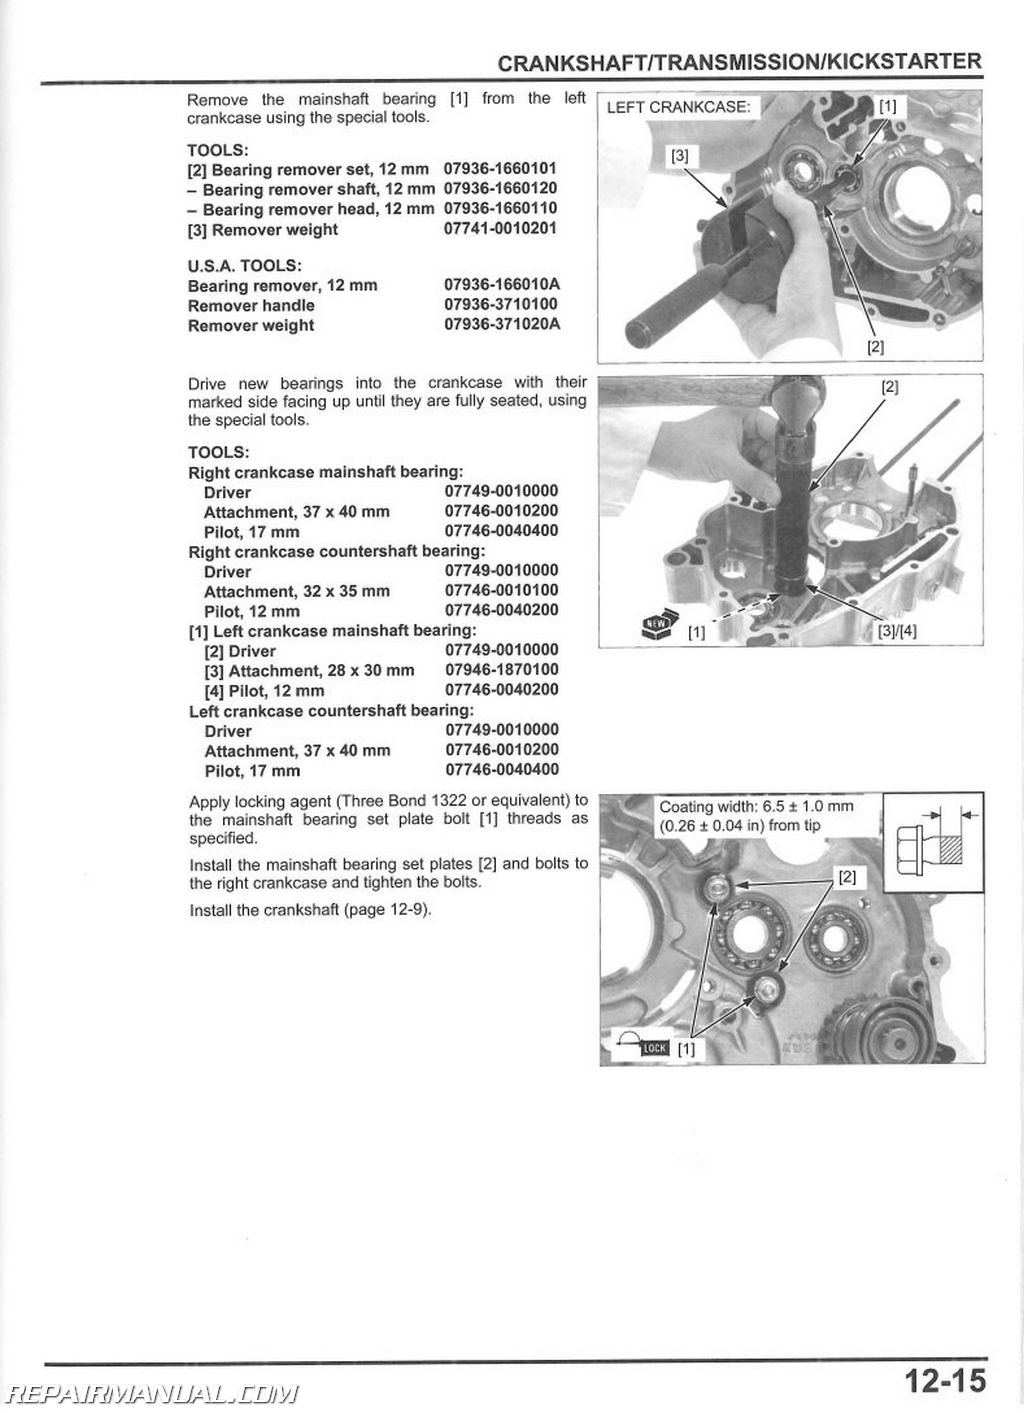 Honda Crf110f Motorcycle Service Manual